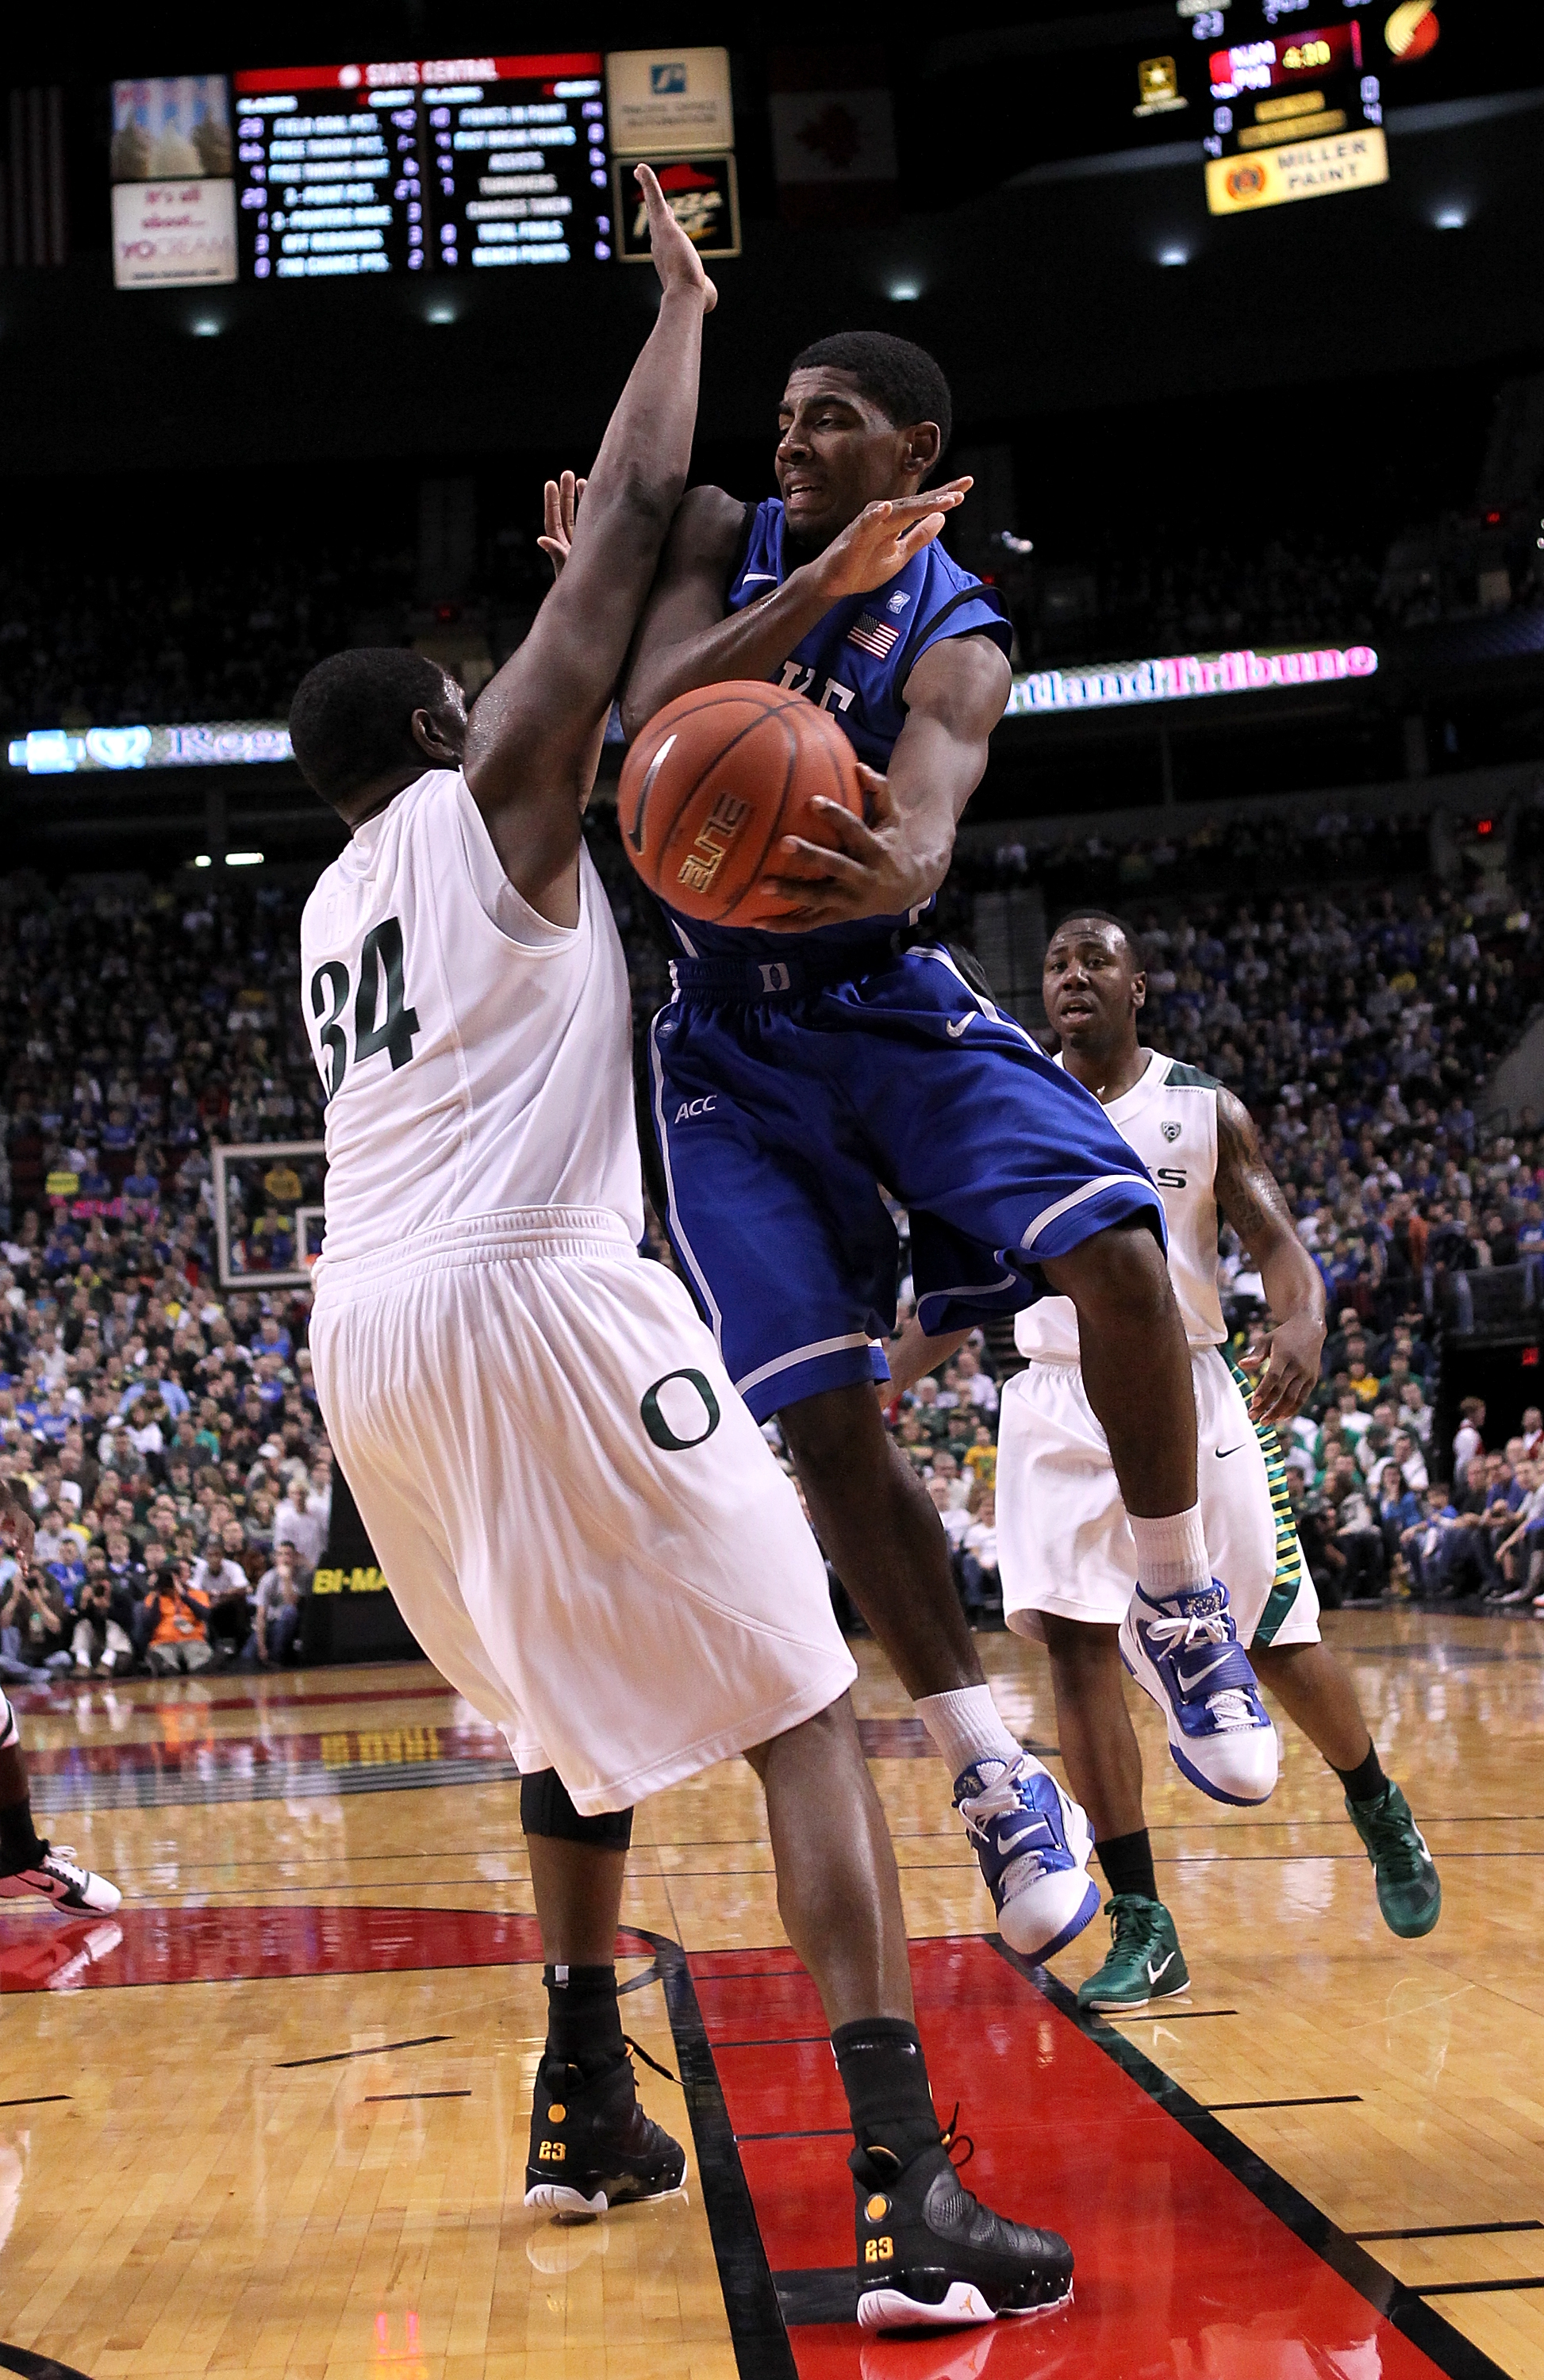 PORTLAND, OR - NOVEMBER 27:  Kyrie Irving #1 of the Duke Blue Devils looks to pass the ball against Joevan Catron #34 of the Oregon Ducks on November 27, 2010 at the Rose Garden in Portland, Oregon.  (Photo by Jonathan Ferrey/Getty Images)